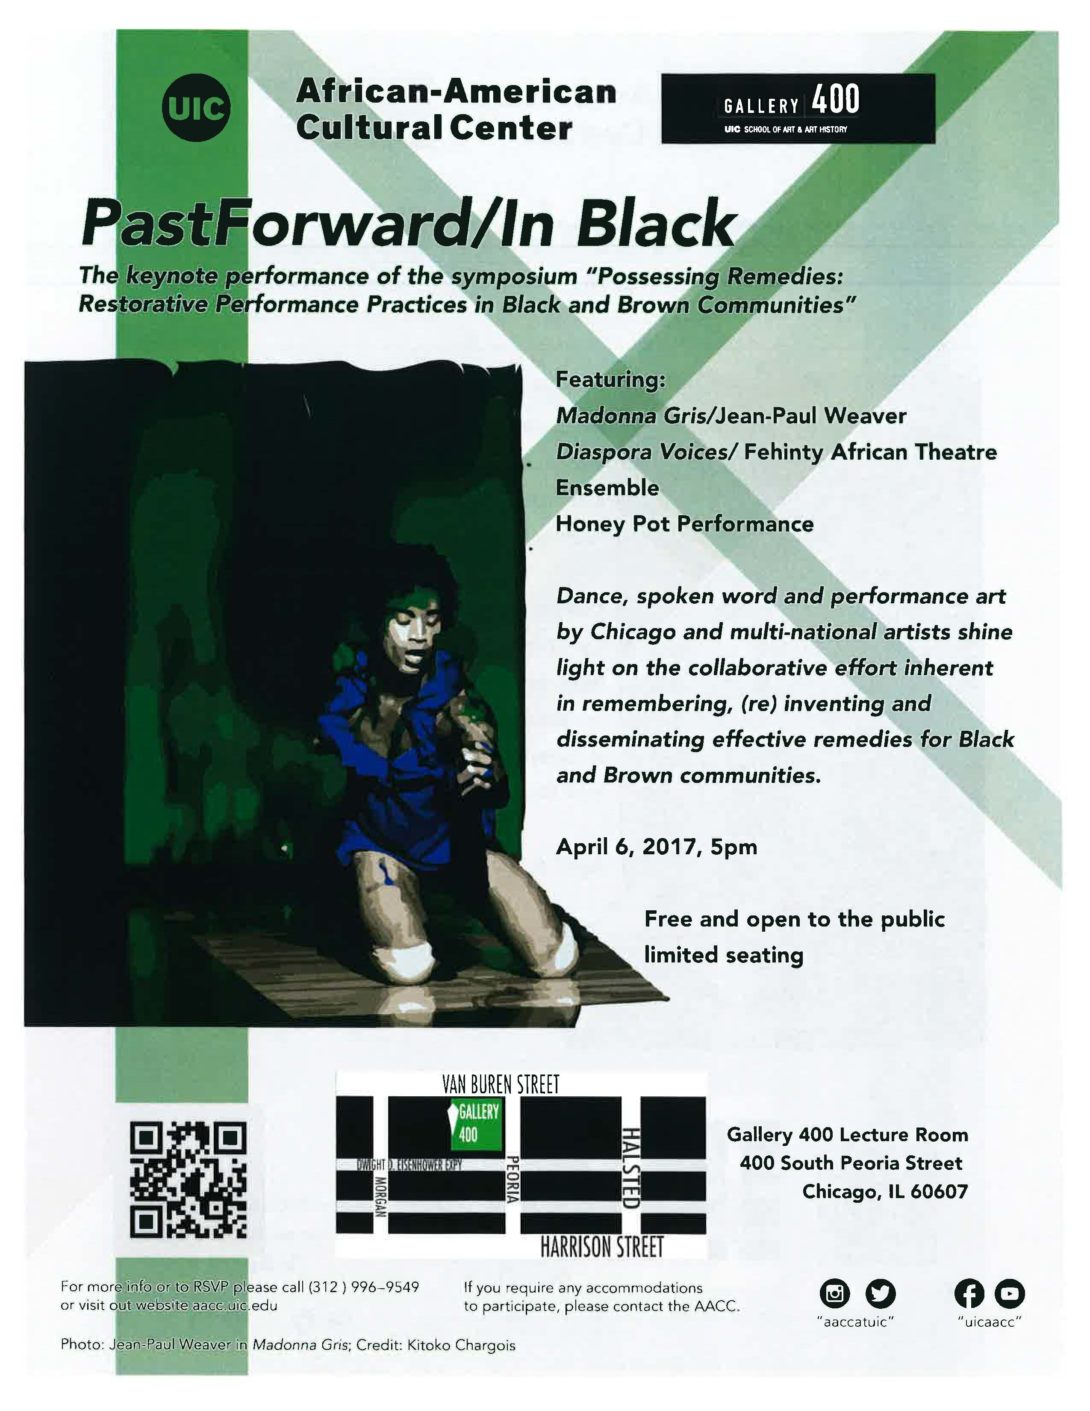 PastForward/ In Black